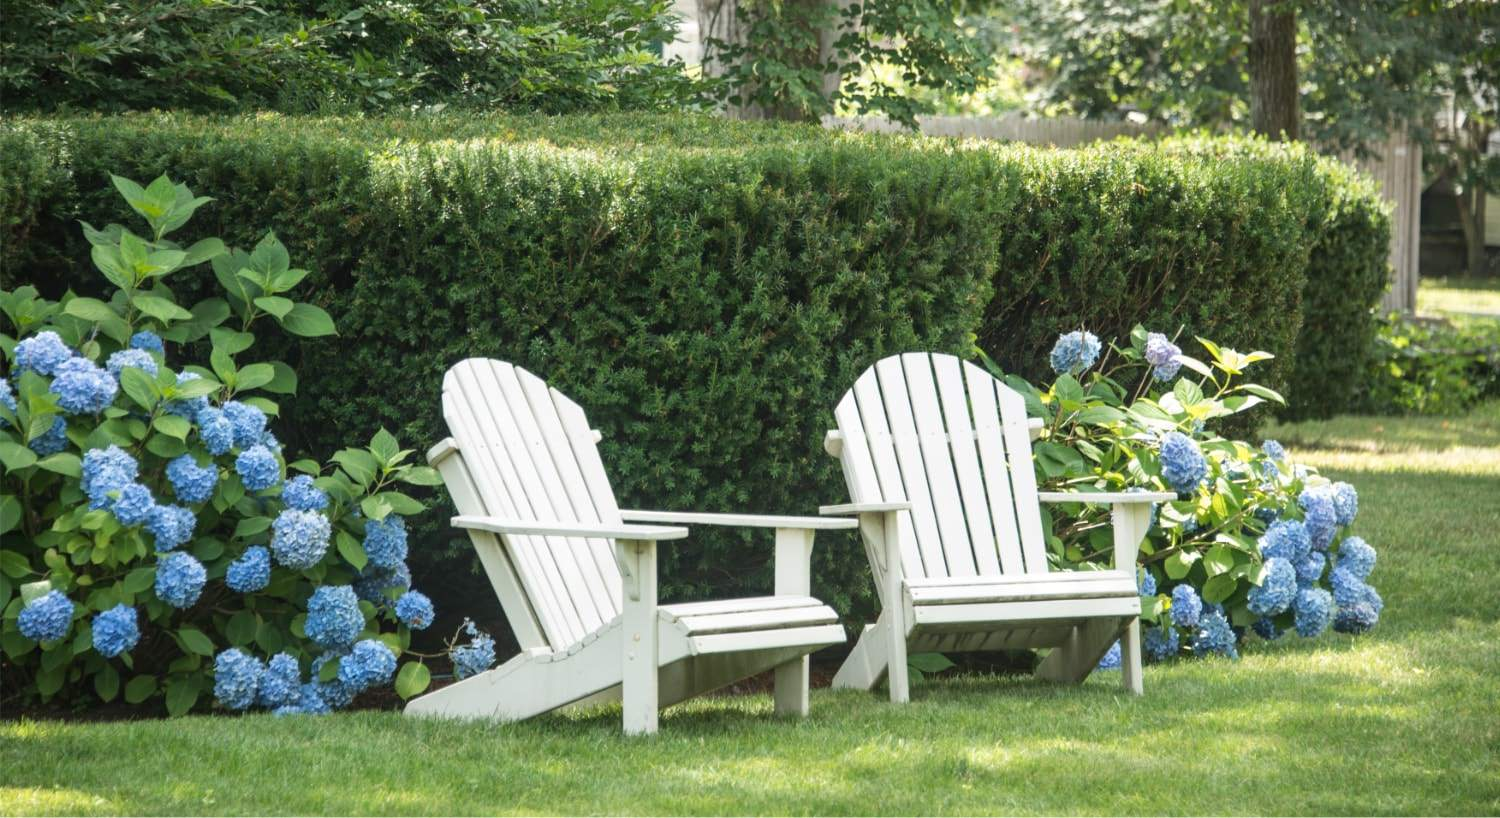 Two white Adirondack chairs sitting in green grass next to trimmed green shrubs and bushes with blue flowers